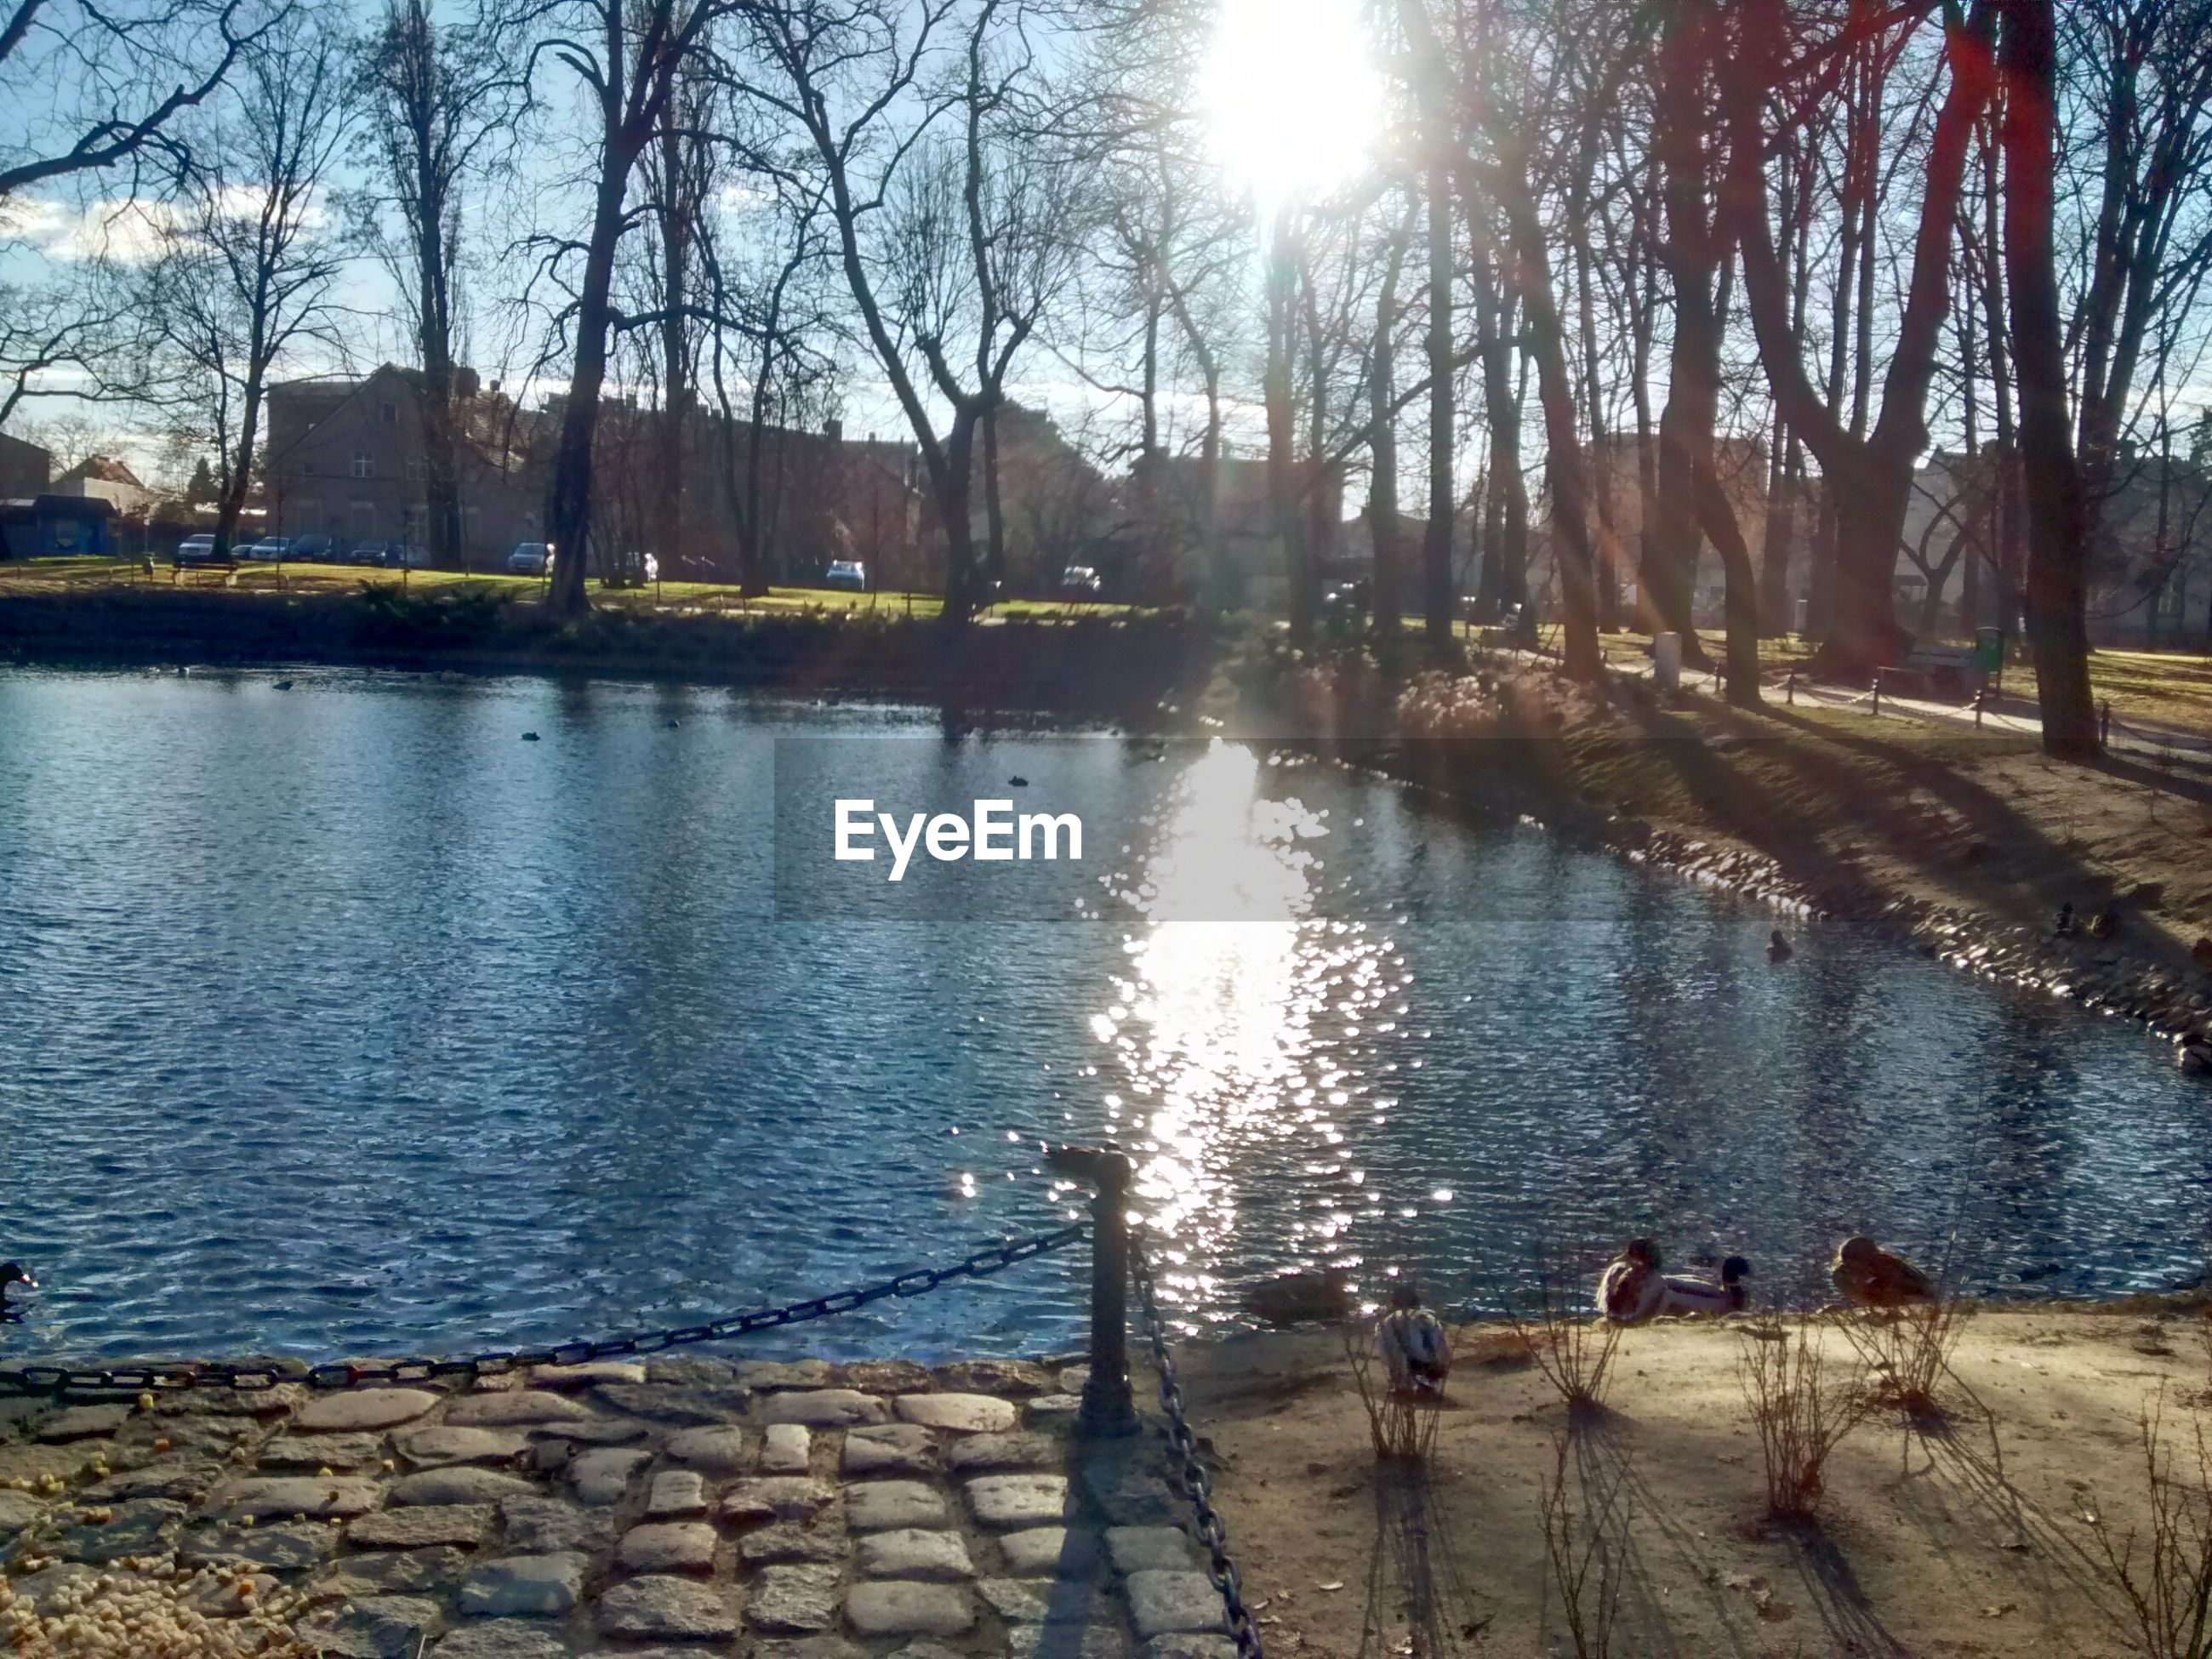 water, tree, sunlight, bare tree, lifestyles, sun, leisure activity, reflection, men, lake, nature, animal themes, river, person, outdoors, sky, lakeshore, sunbeam, beauty in nature